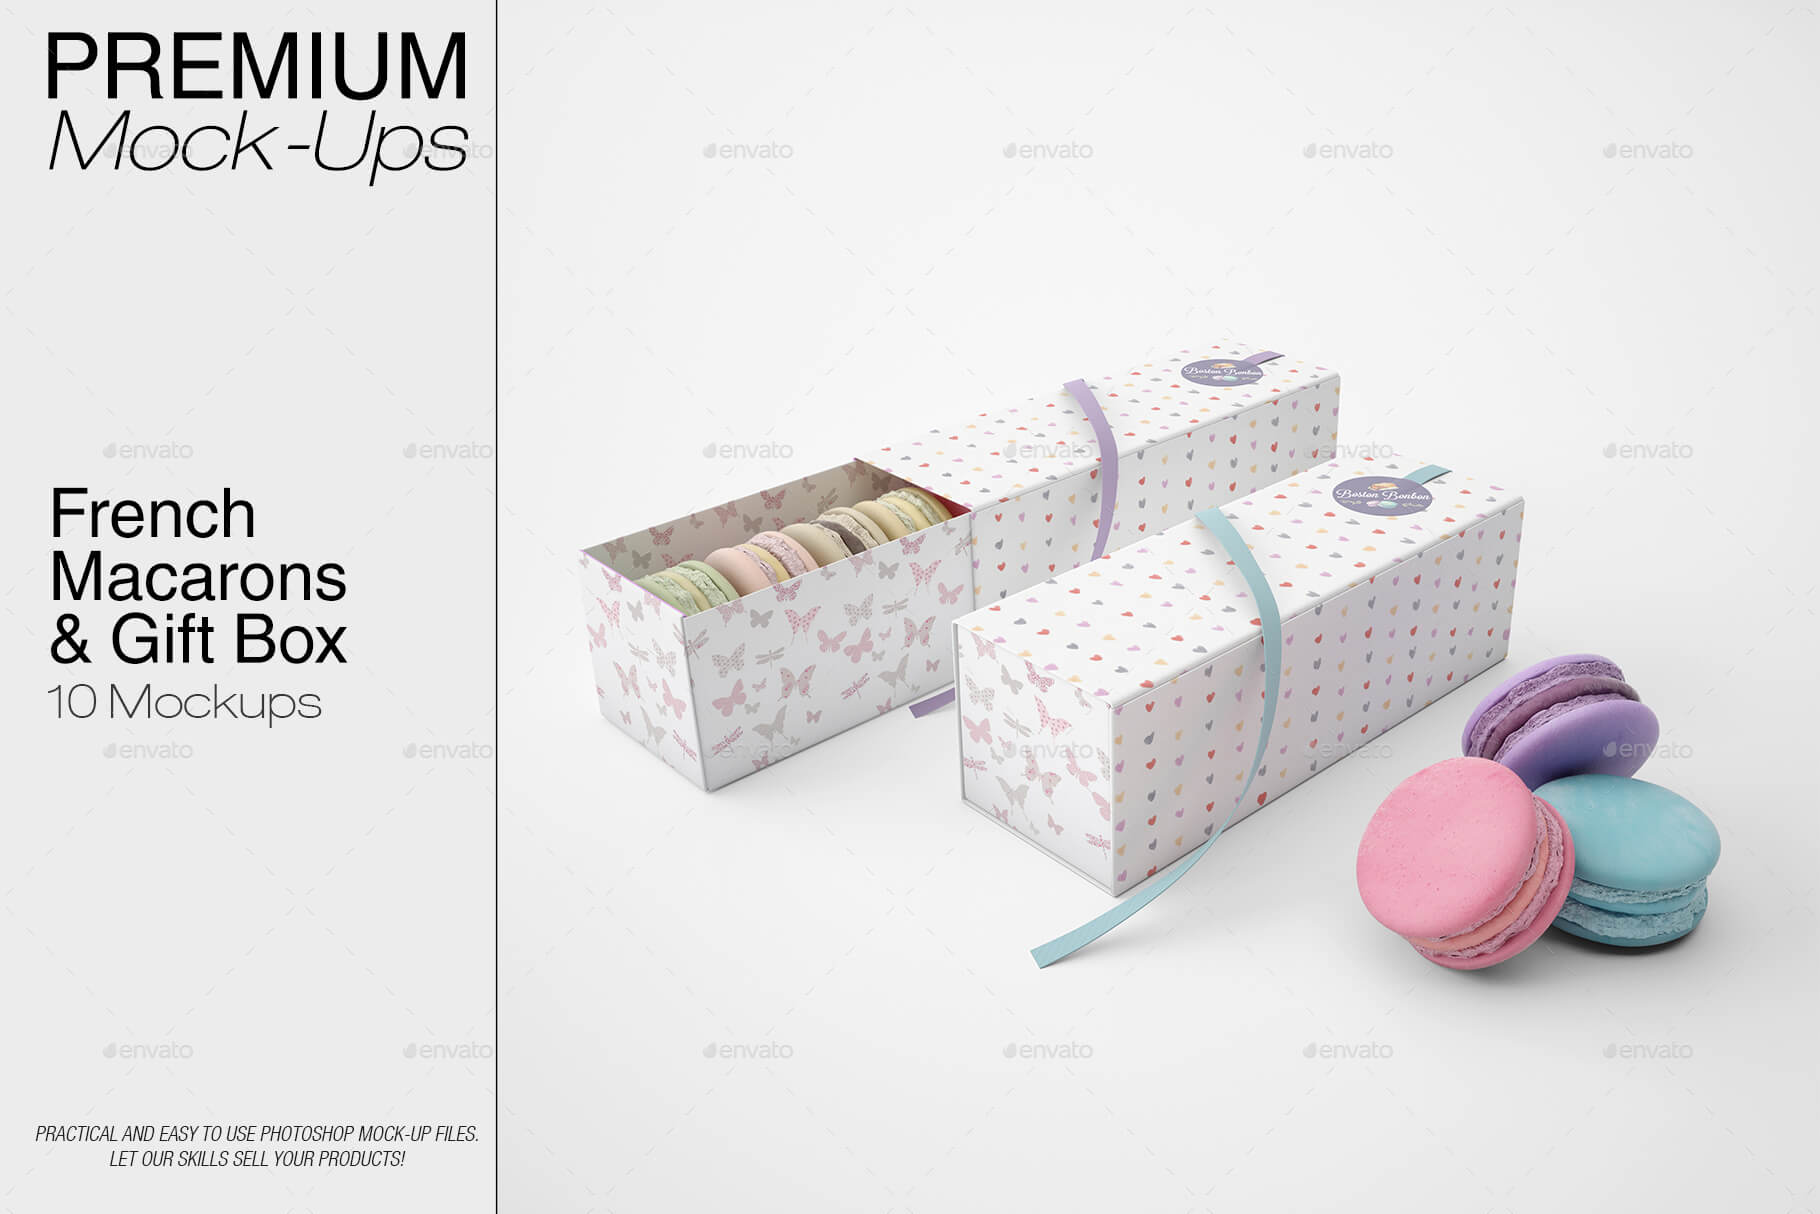 French Macarons & Gift Box Mockup Pack (1)